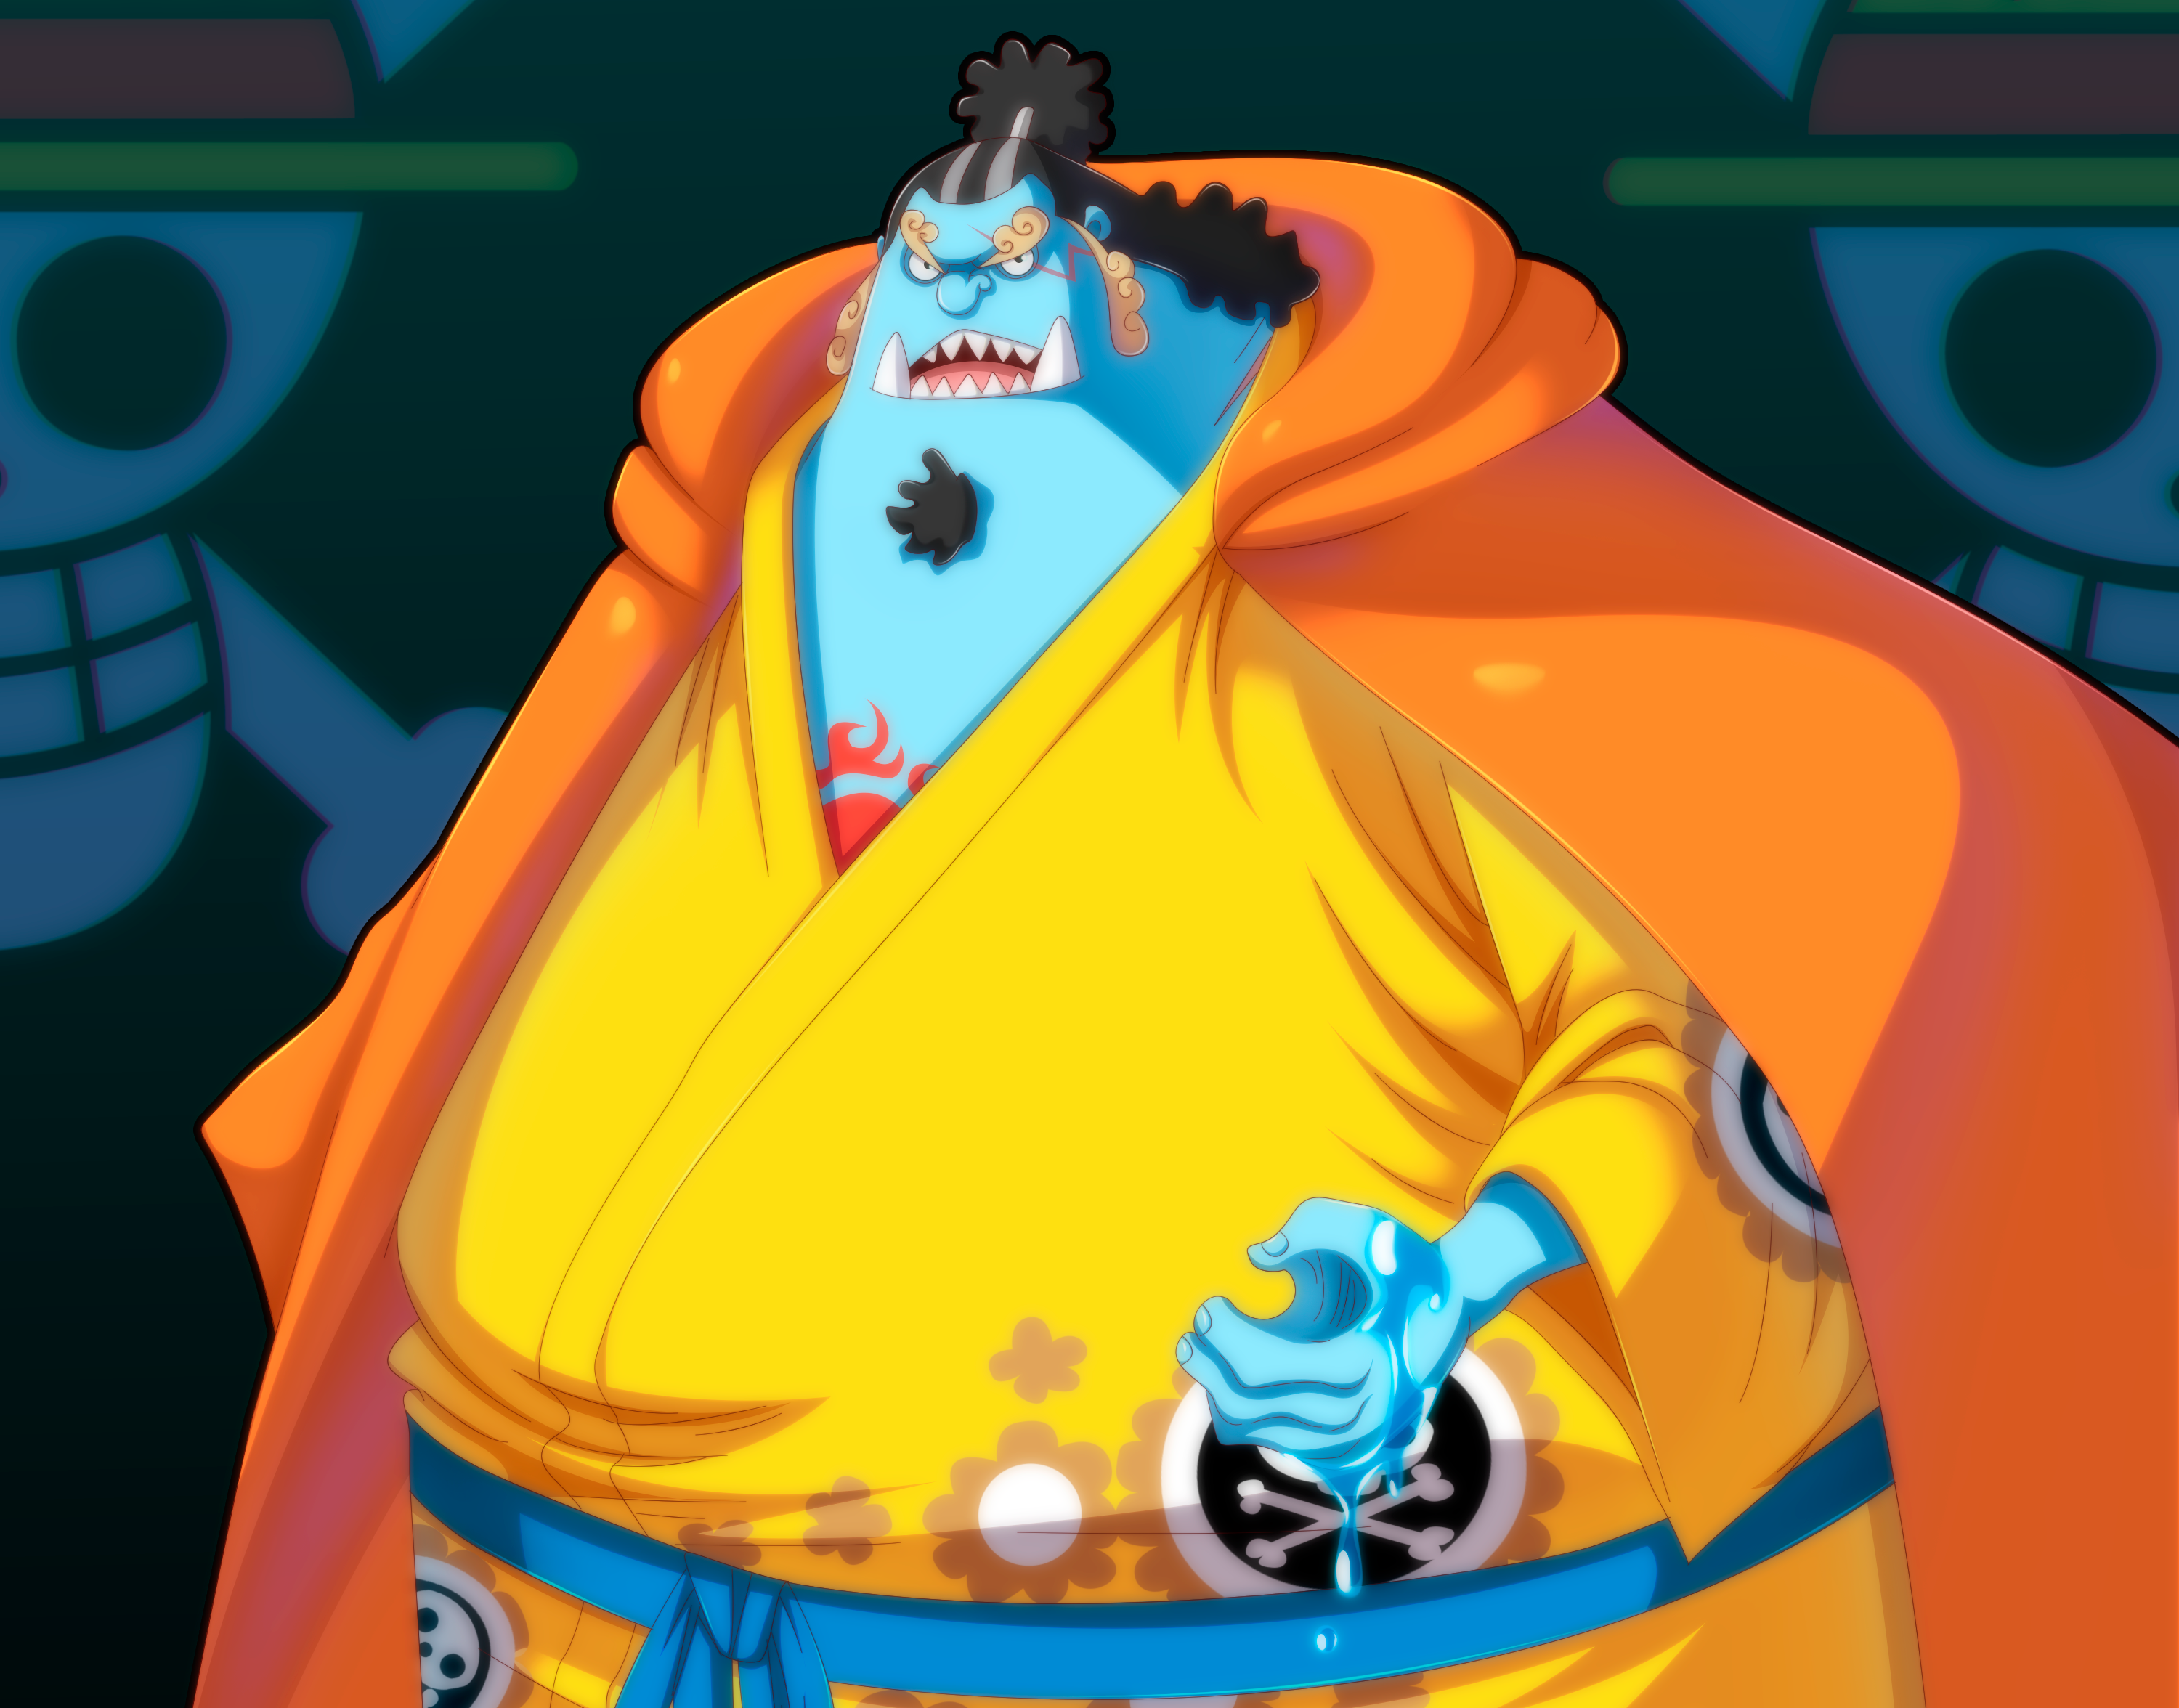 One Piece Jinbe 3000x2352 Wallpaper Teahub Io